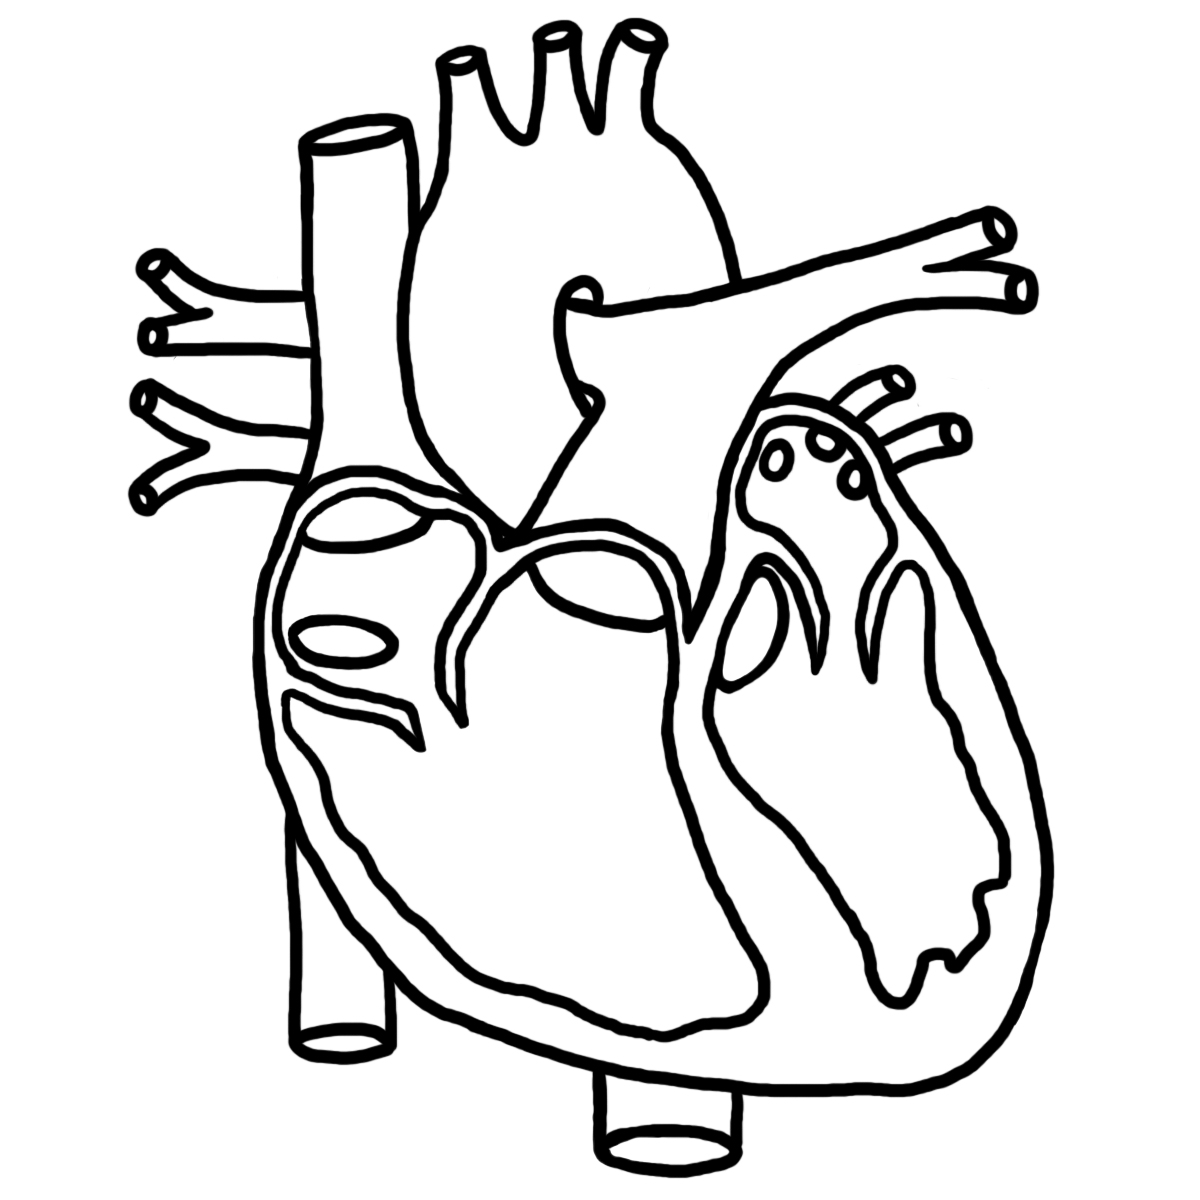 the heart coloring pages - photo #8